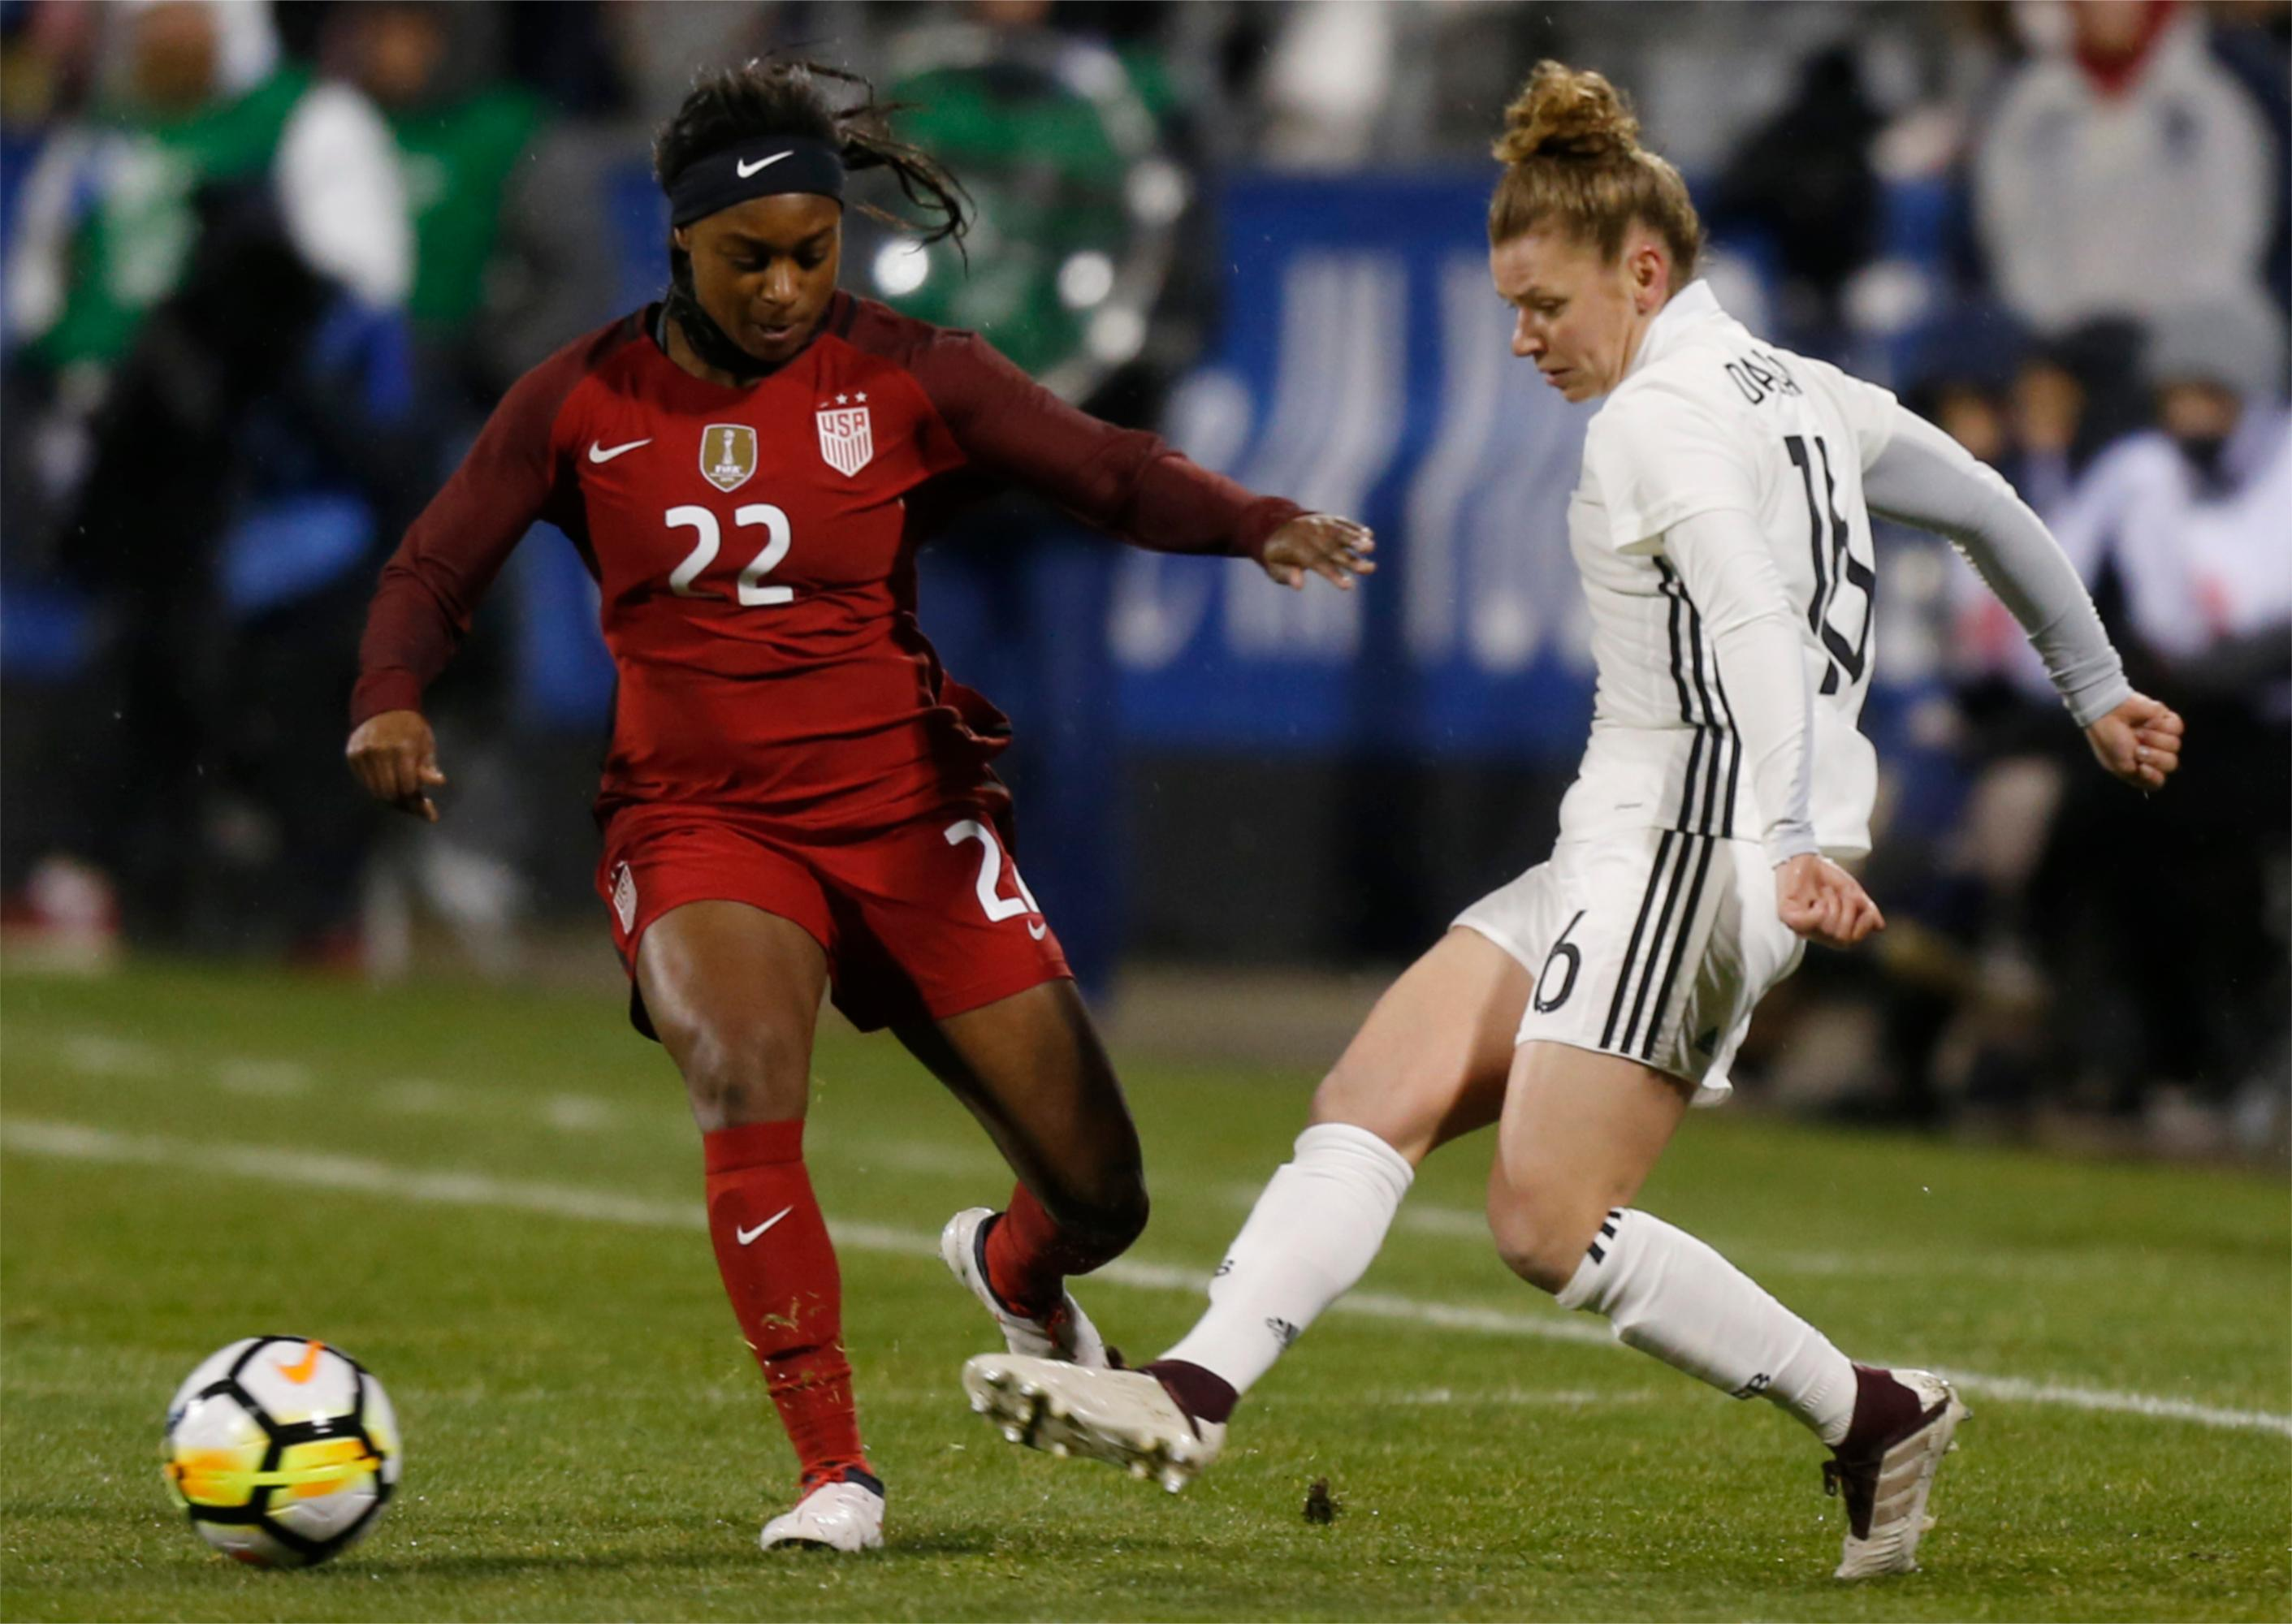 Germany's Linda Dallmann, right, clears the ball past United States' Taylor Smith during the first half of a SheBelieves Cup women's soccer match Thursday, March 1, 2018, in Columbus, Ohio. (AP Photo/Jay LaPrete)